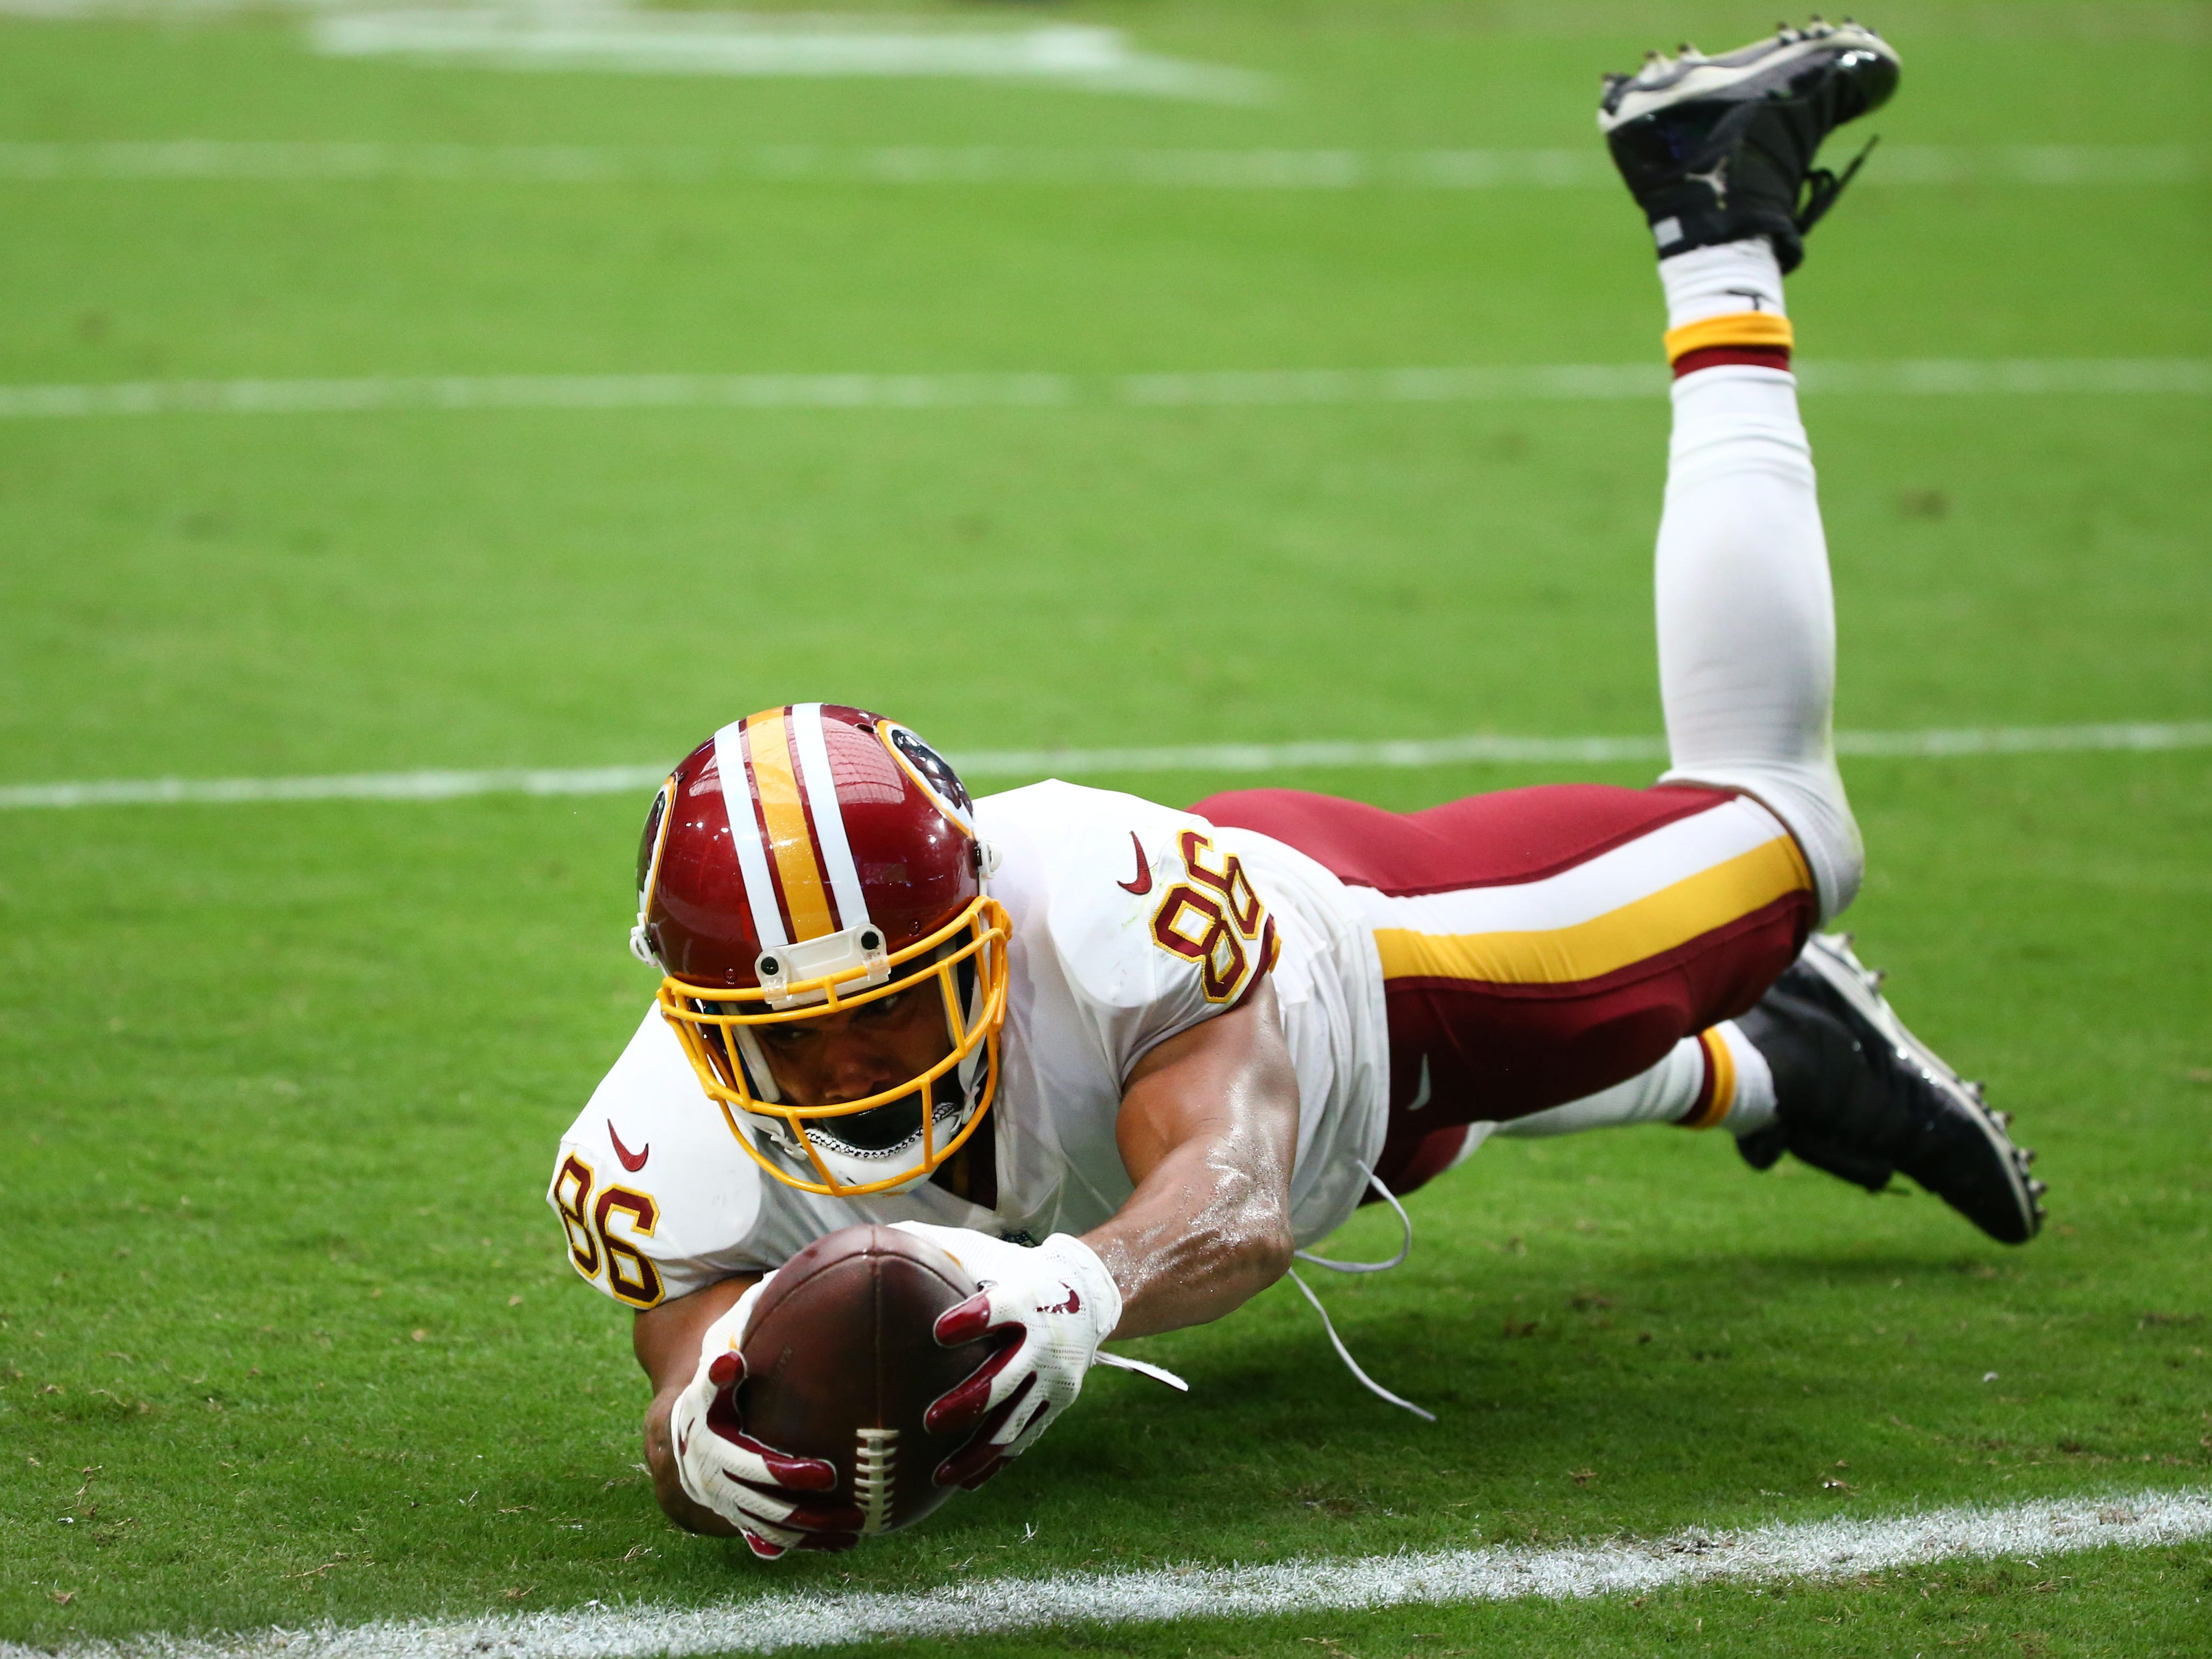 Washington Redskins tight end Jordan Reed dives for a touchdown against the Arizona Cardinals in the first half at State Farm Stadium.